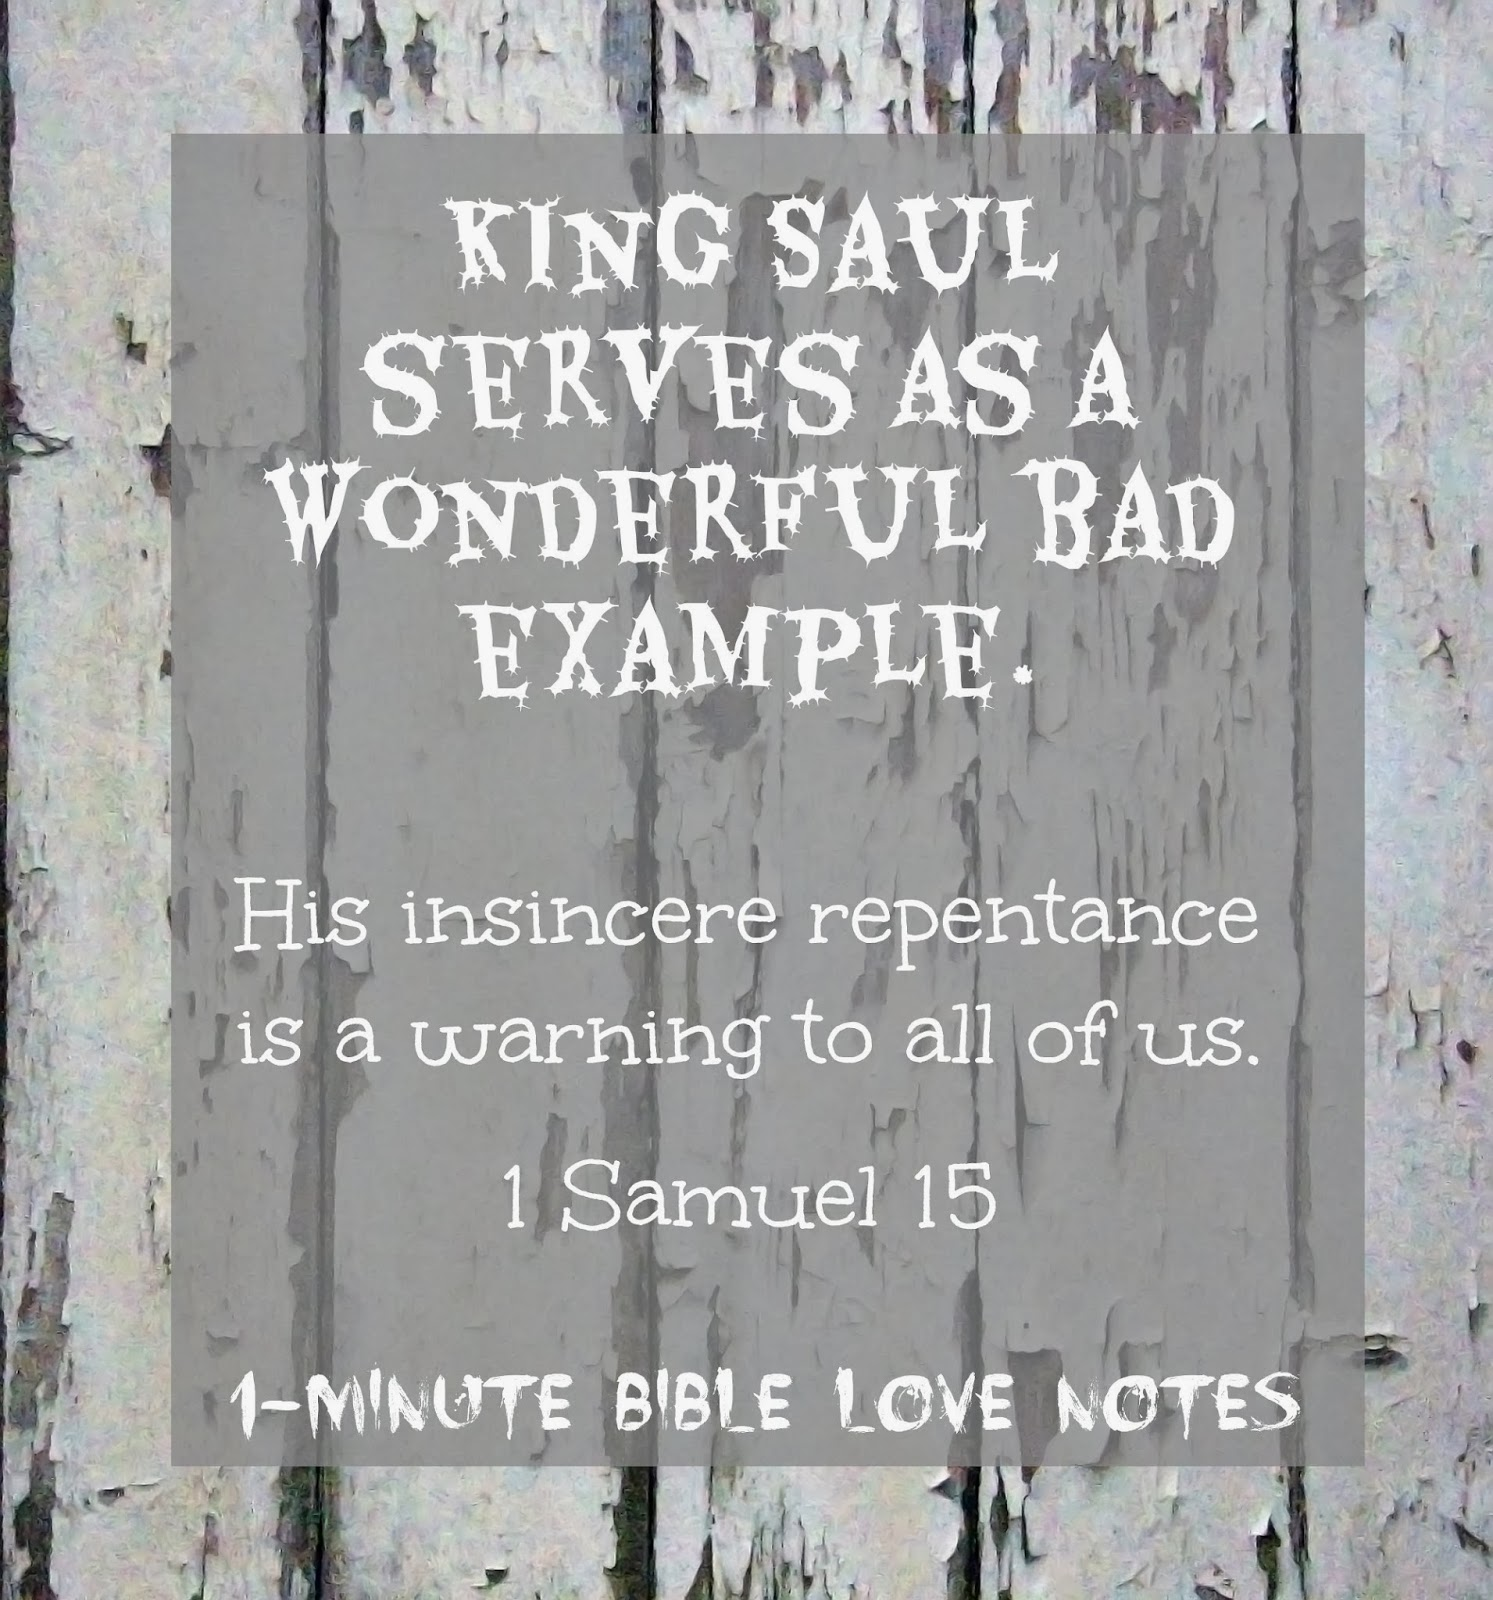 King Saul's insincerity, repentance, Samuel, King Saul's lies